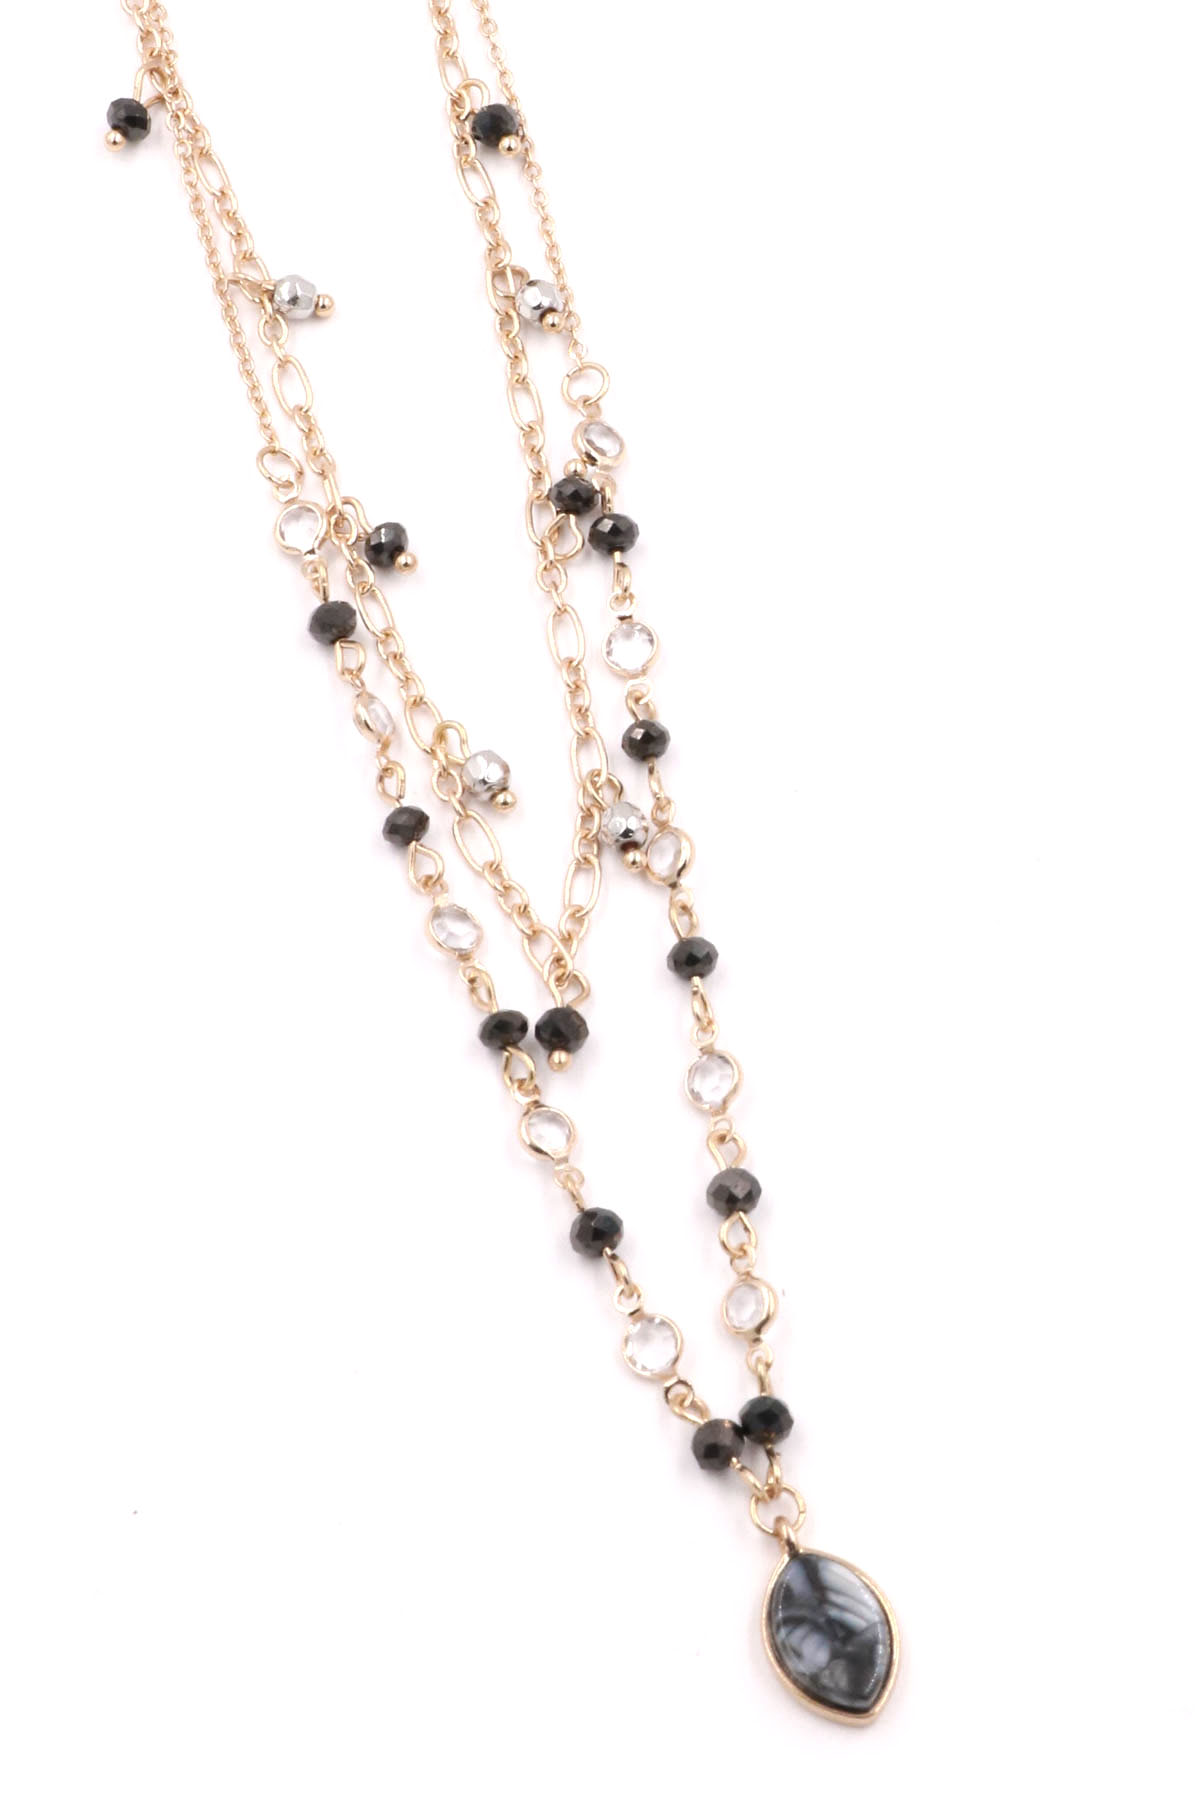 Layered Glass Bead/Rhinestone Necklace - Necklaces